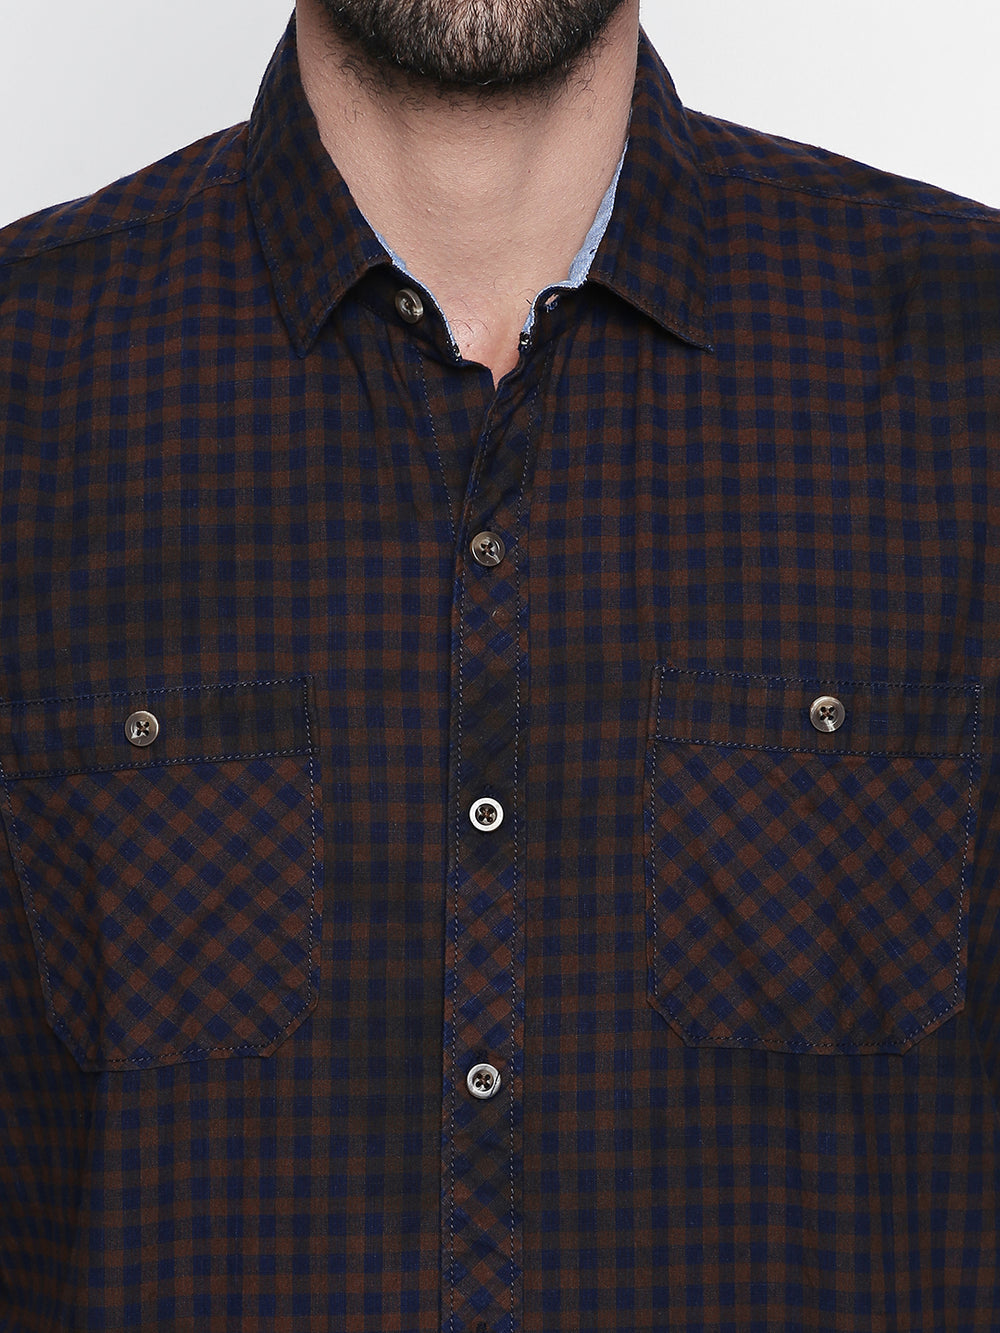 Disrupt Brown Cotton Full Sleeve Shirt